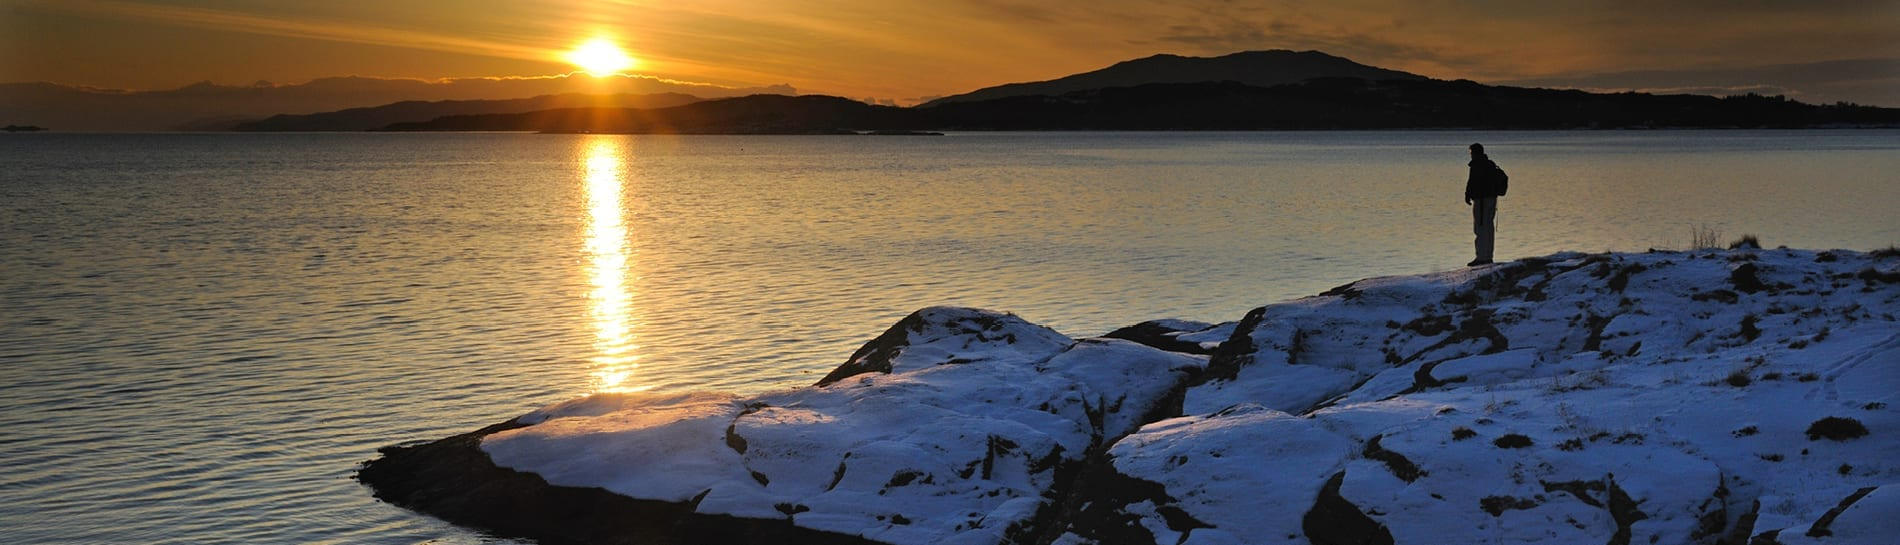 Winter View from Loch Melfort Headland